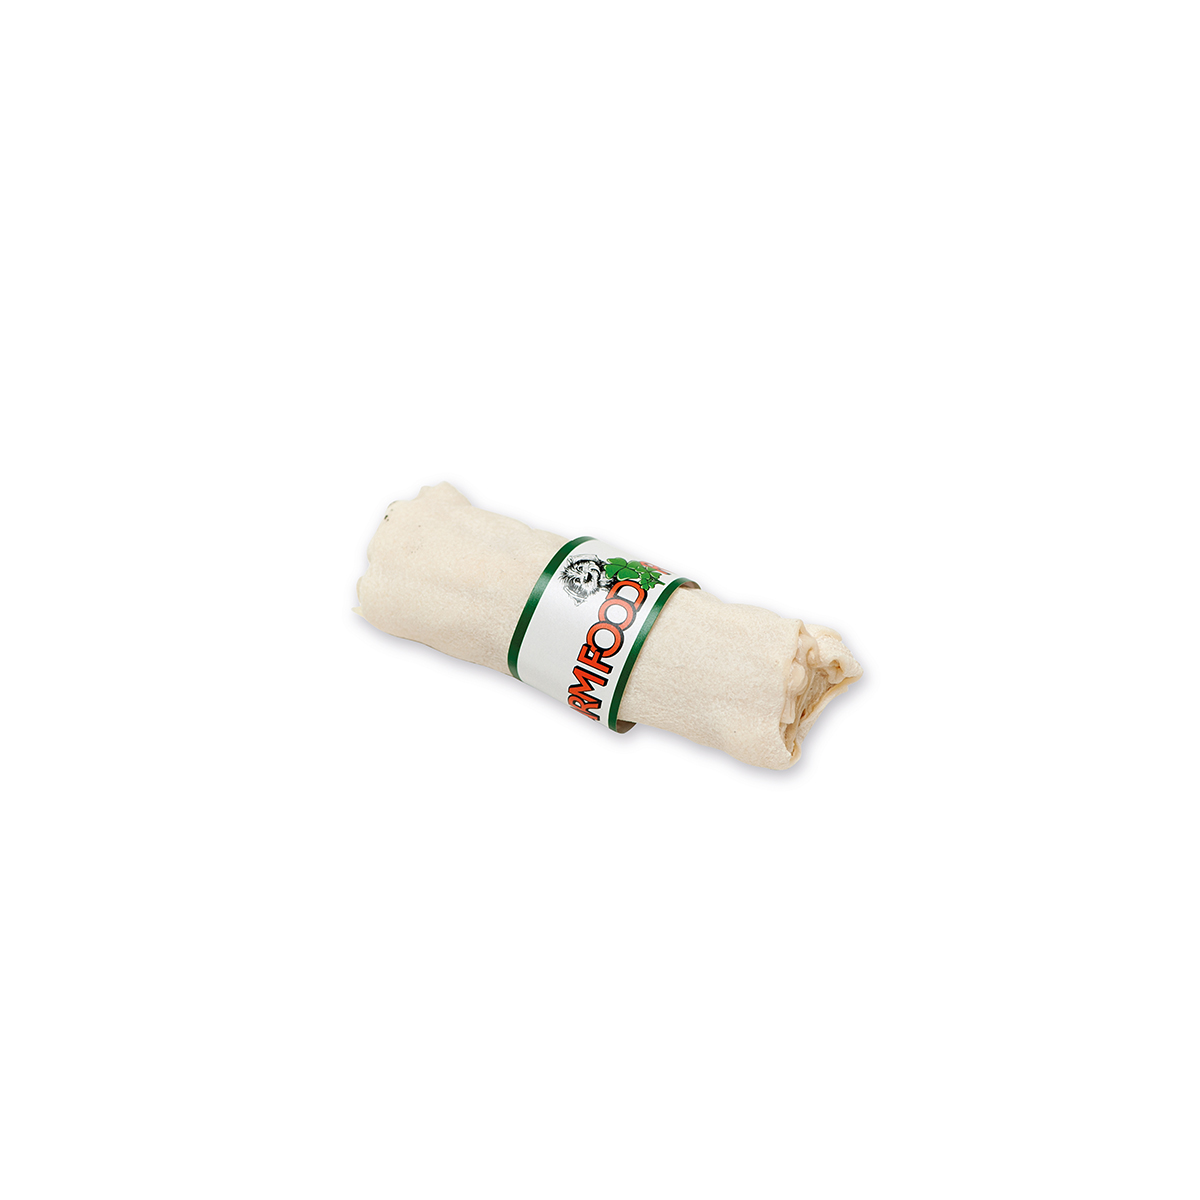 Farmfood dental roll klein naturel 100gr